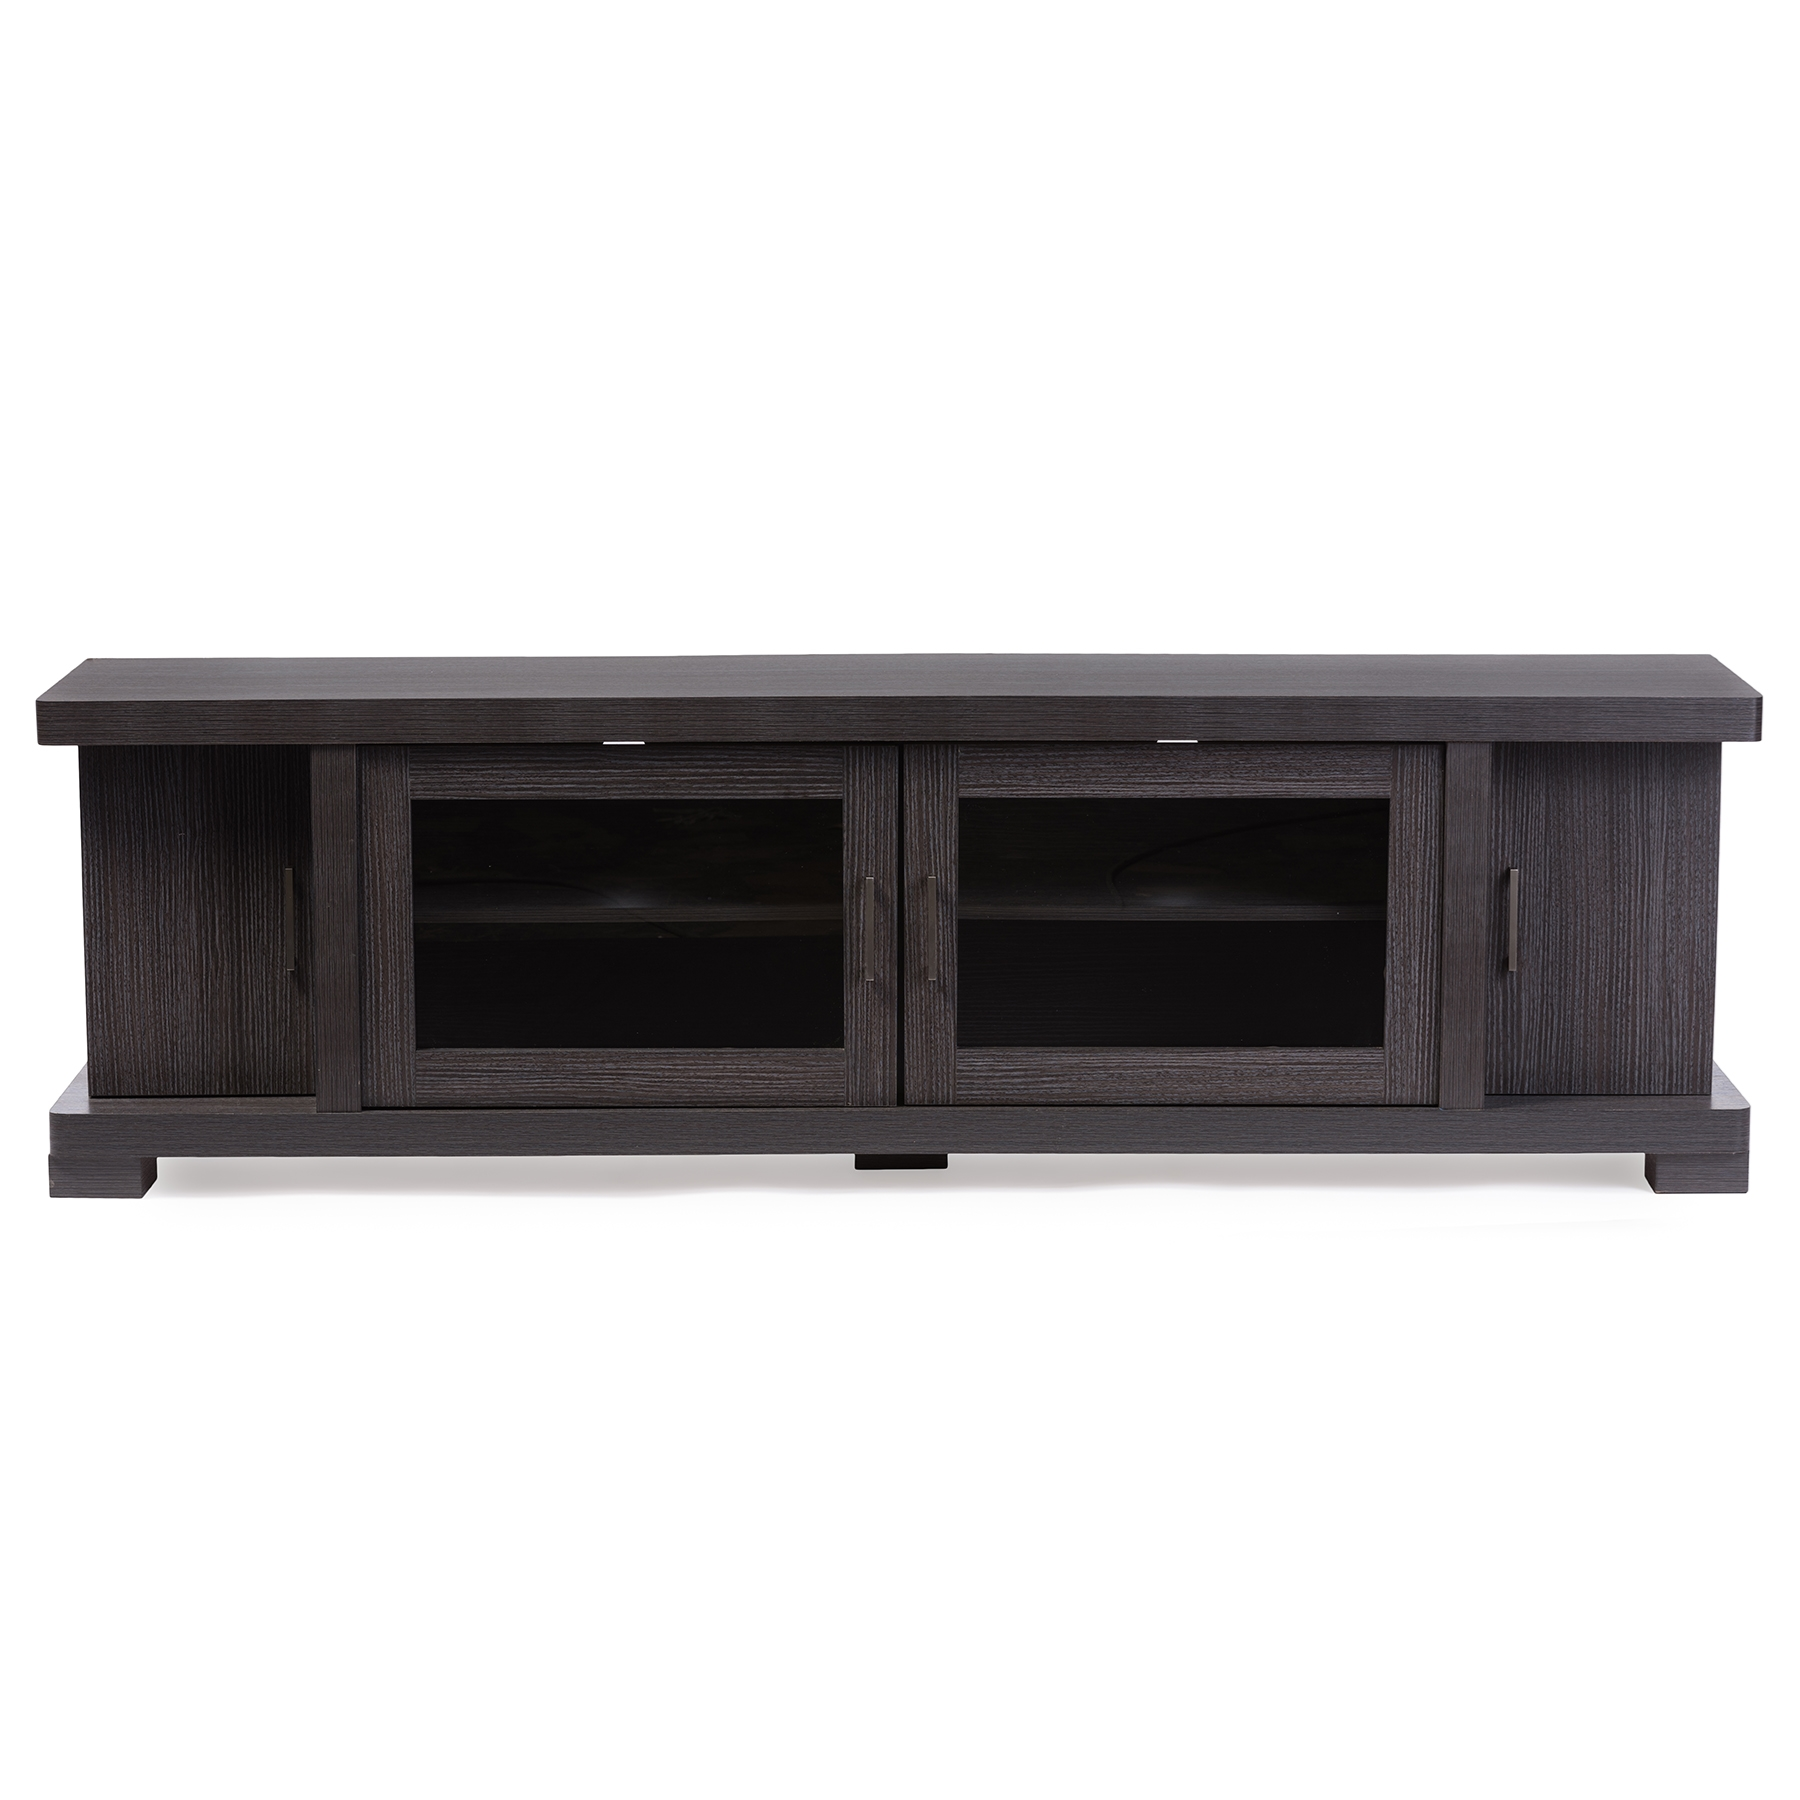 Baxton Studio Viveka 70 Inch Dark Brown Wood TV Cabinet With 2 Glass Doors  And ...